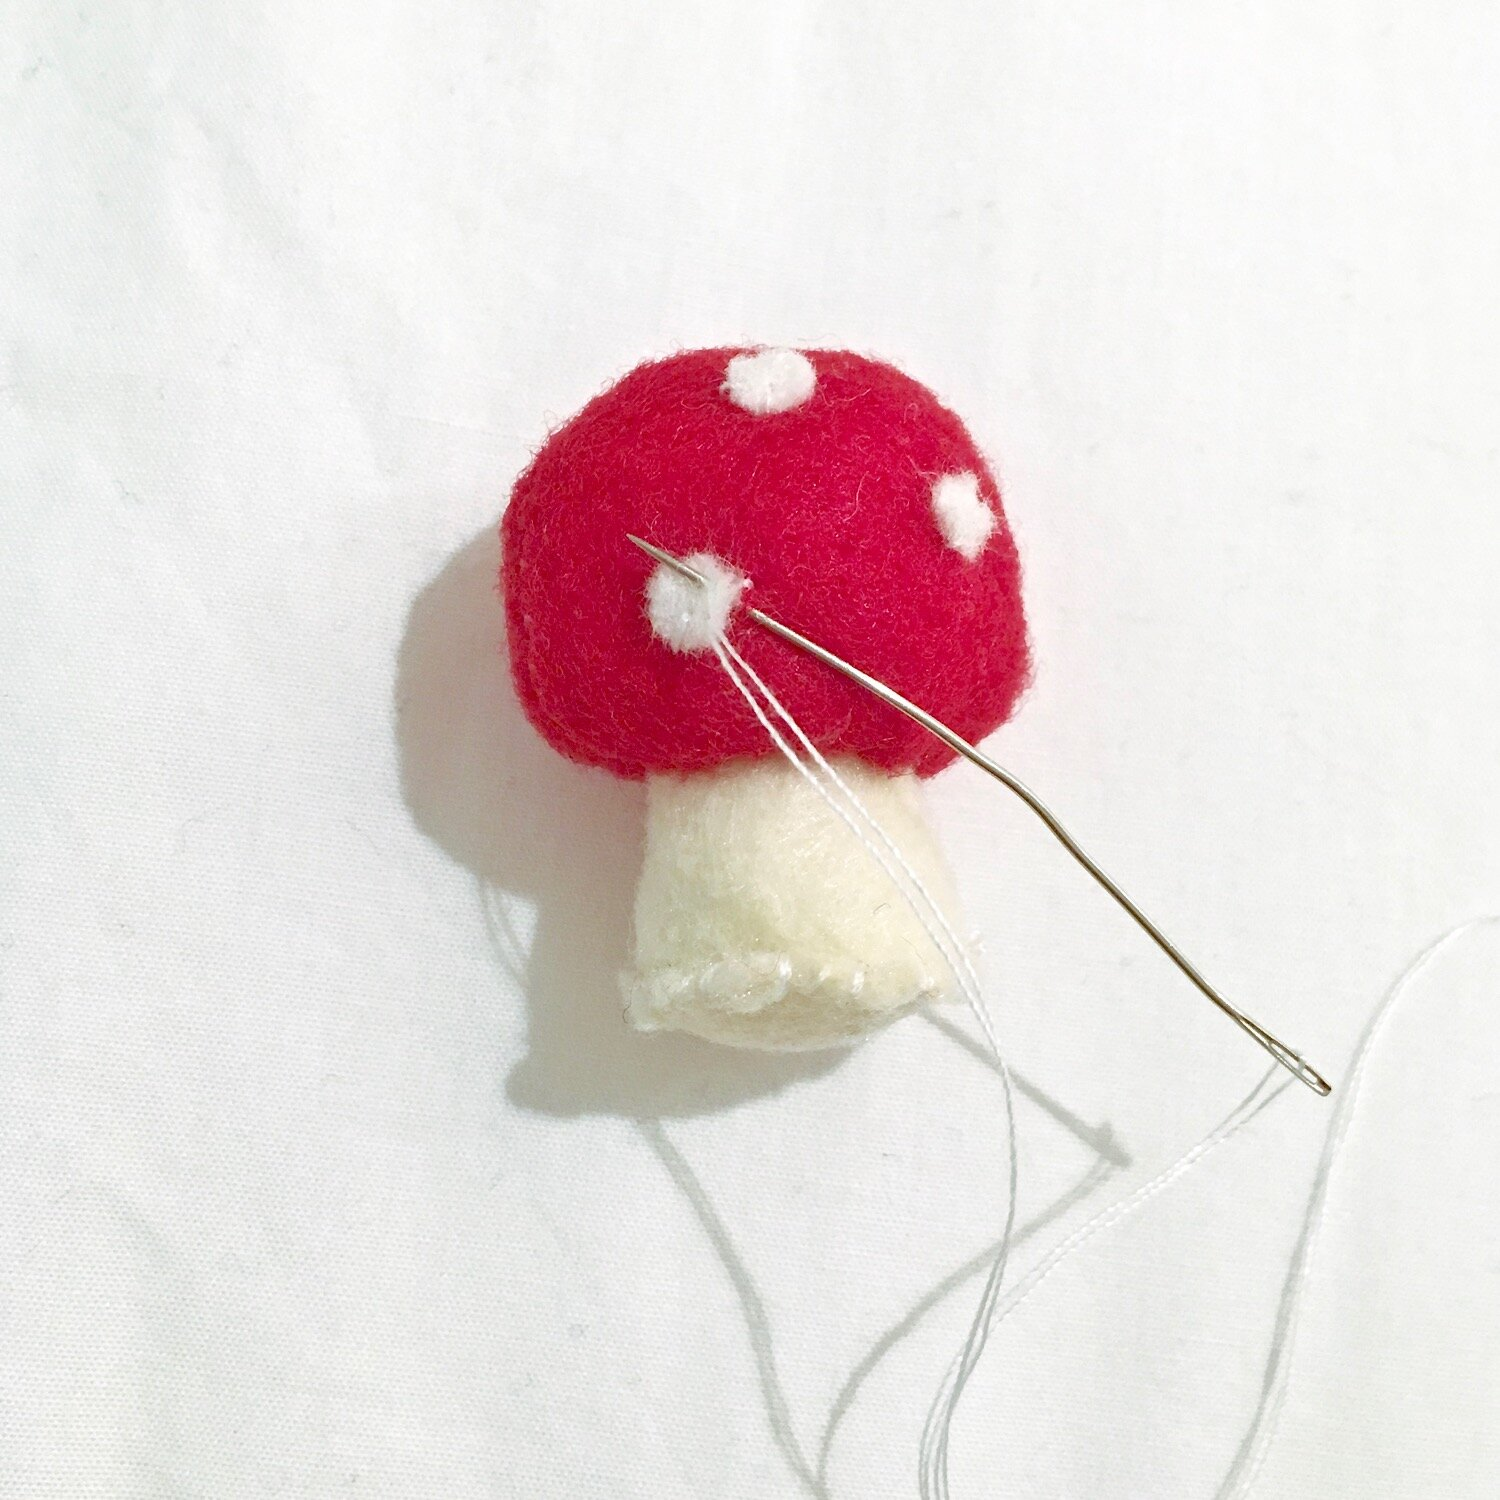 Cut out small felt spots or use a leather hole punch and Add the spots either by stitching or with glue.